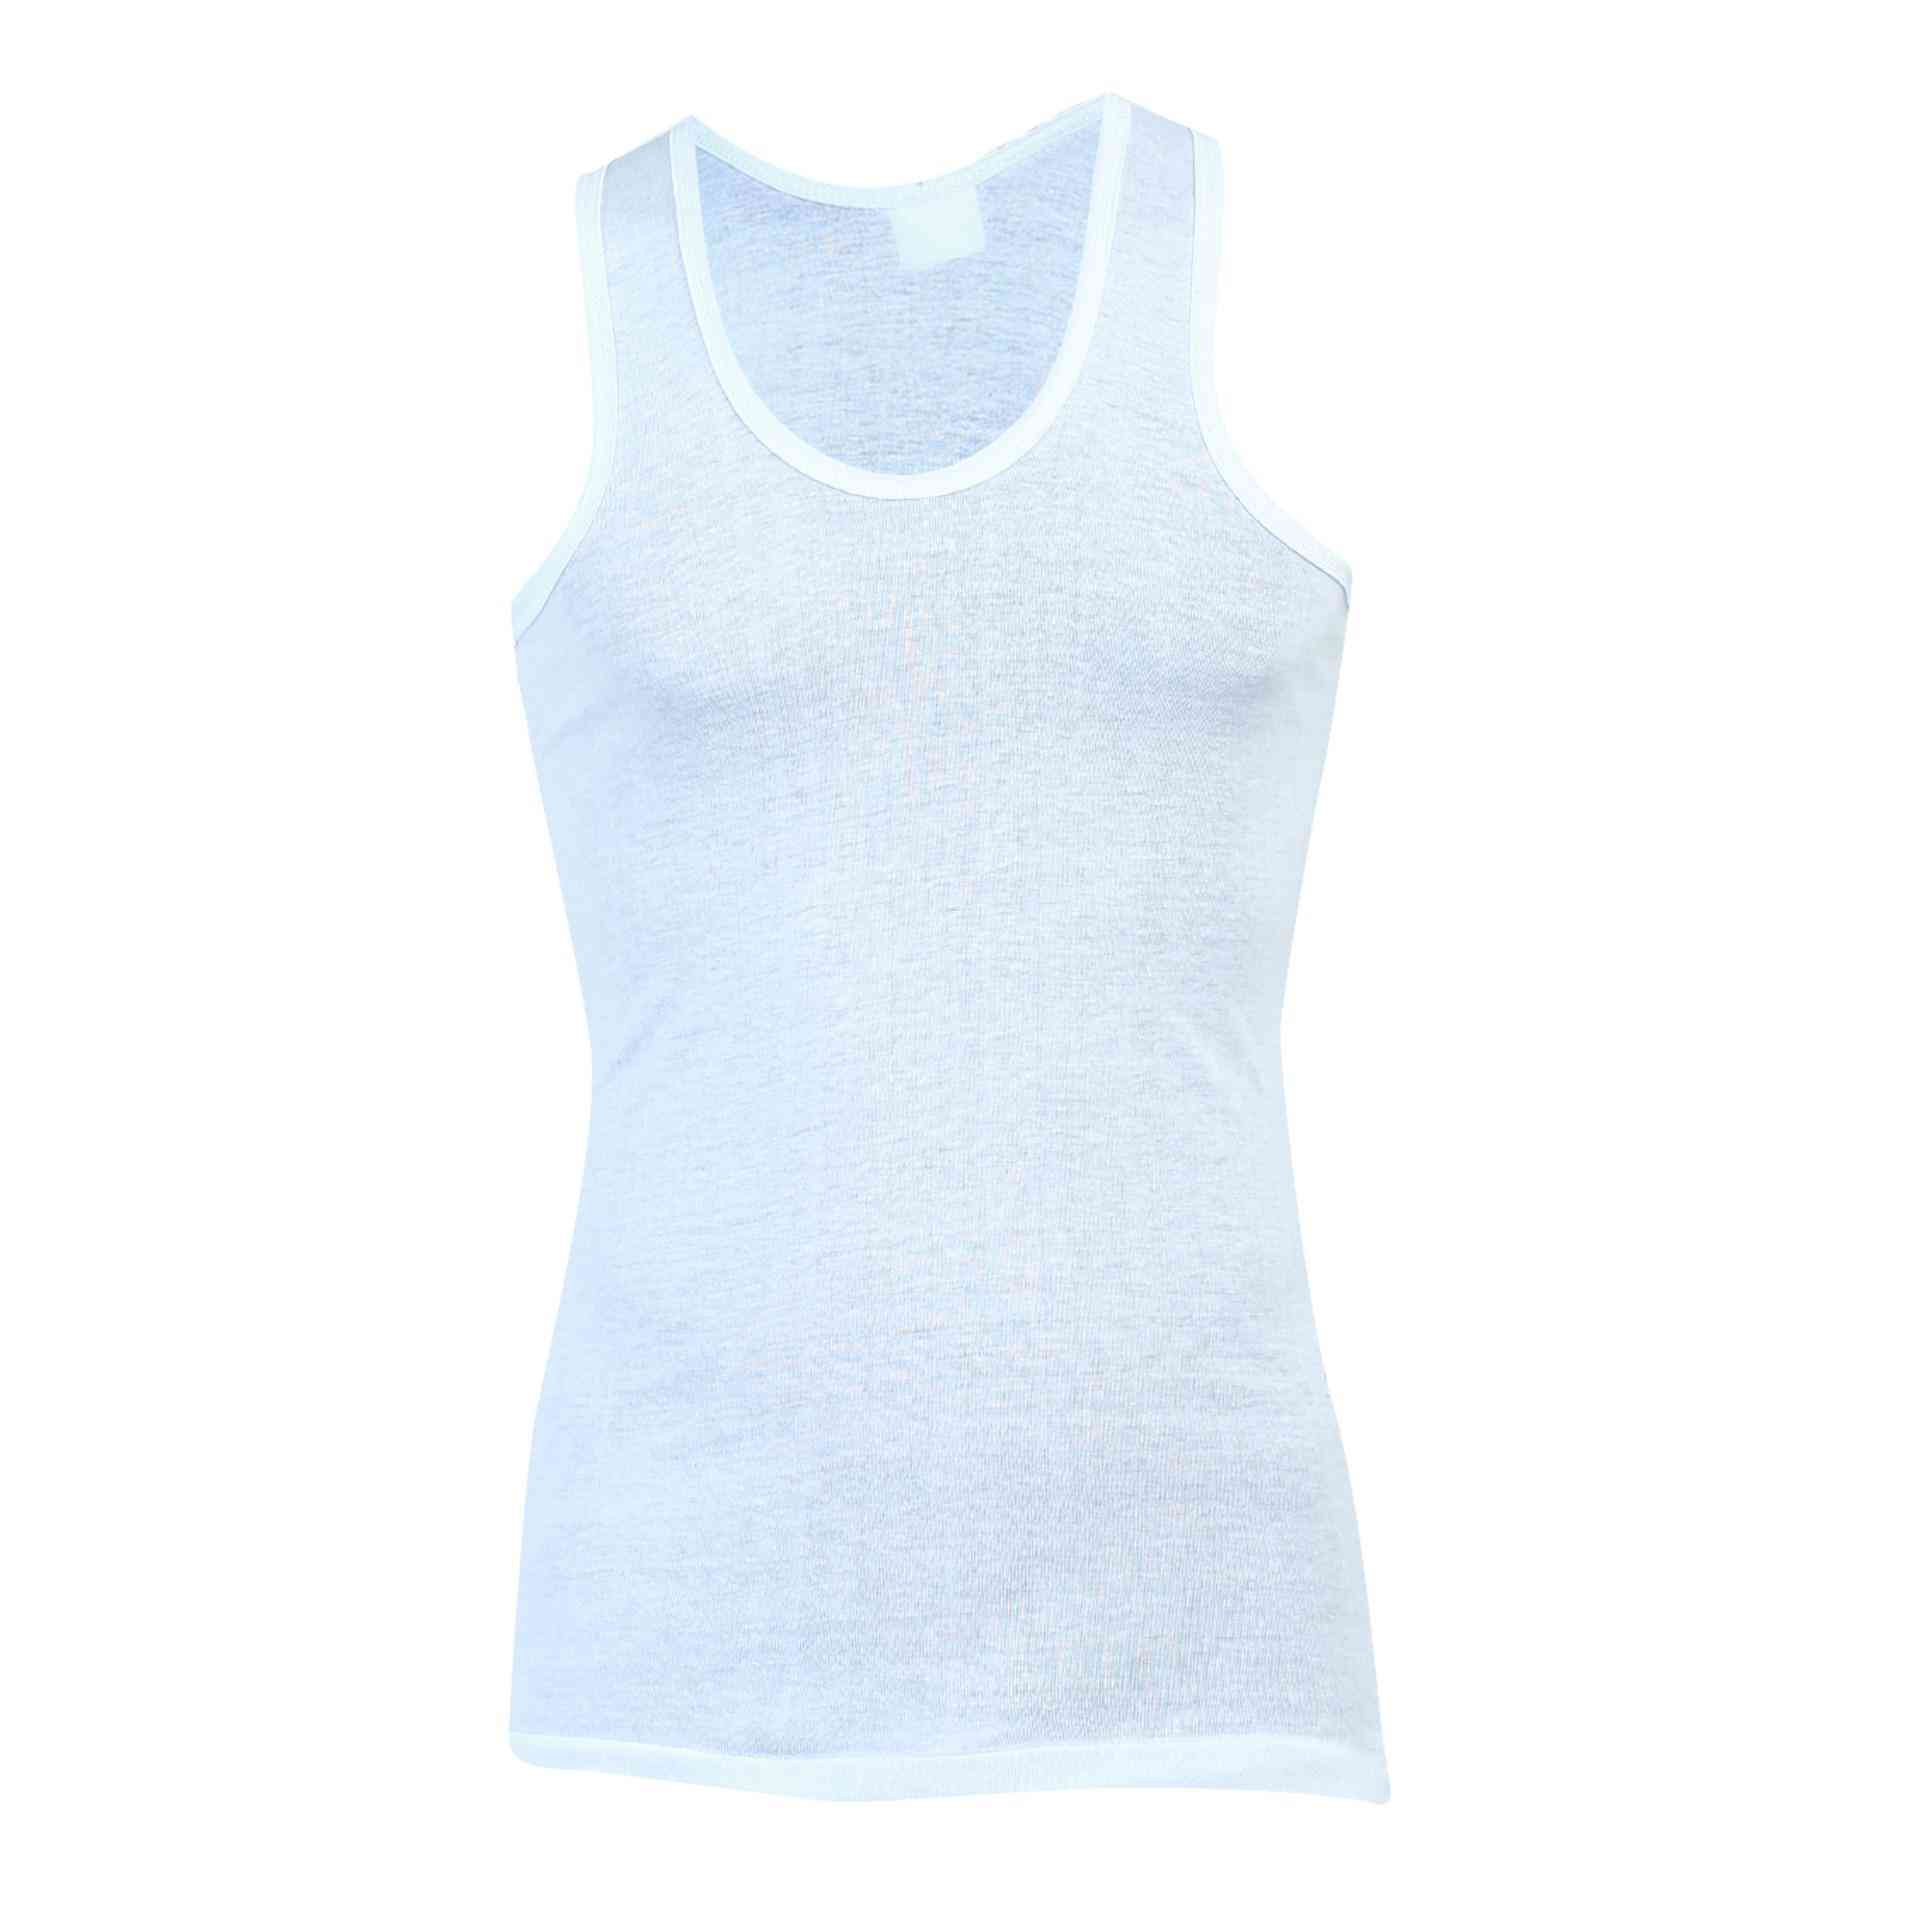 Daisy Summer Cotton Polyester Vest for Men (80% Cotton 20% Polyester) - White